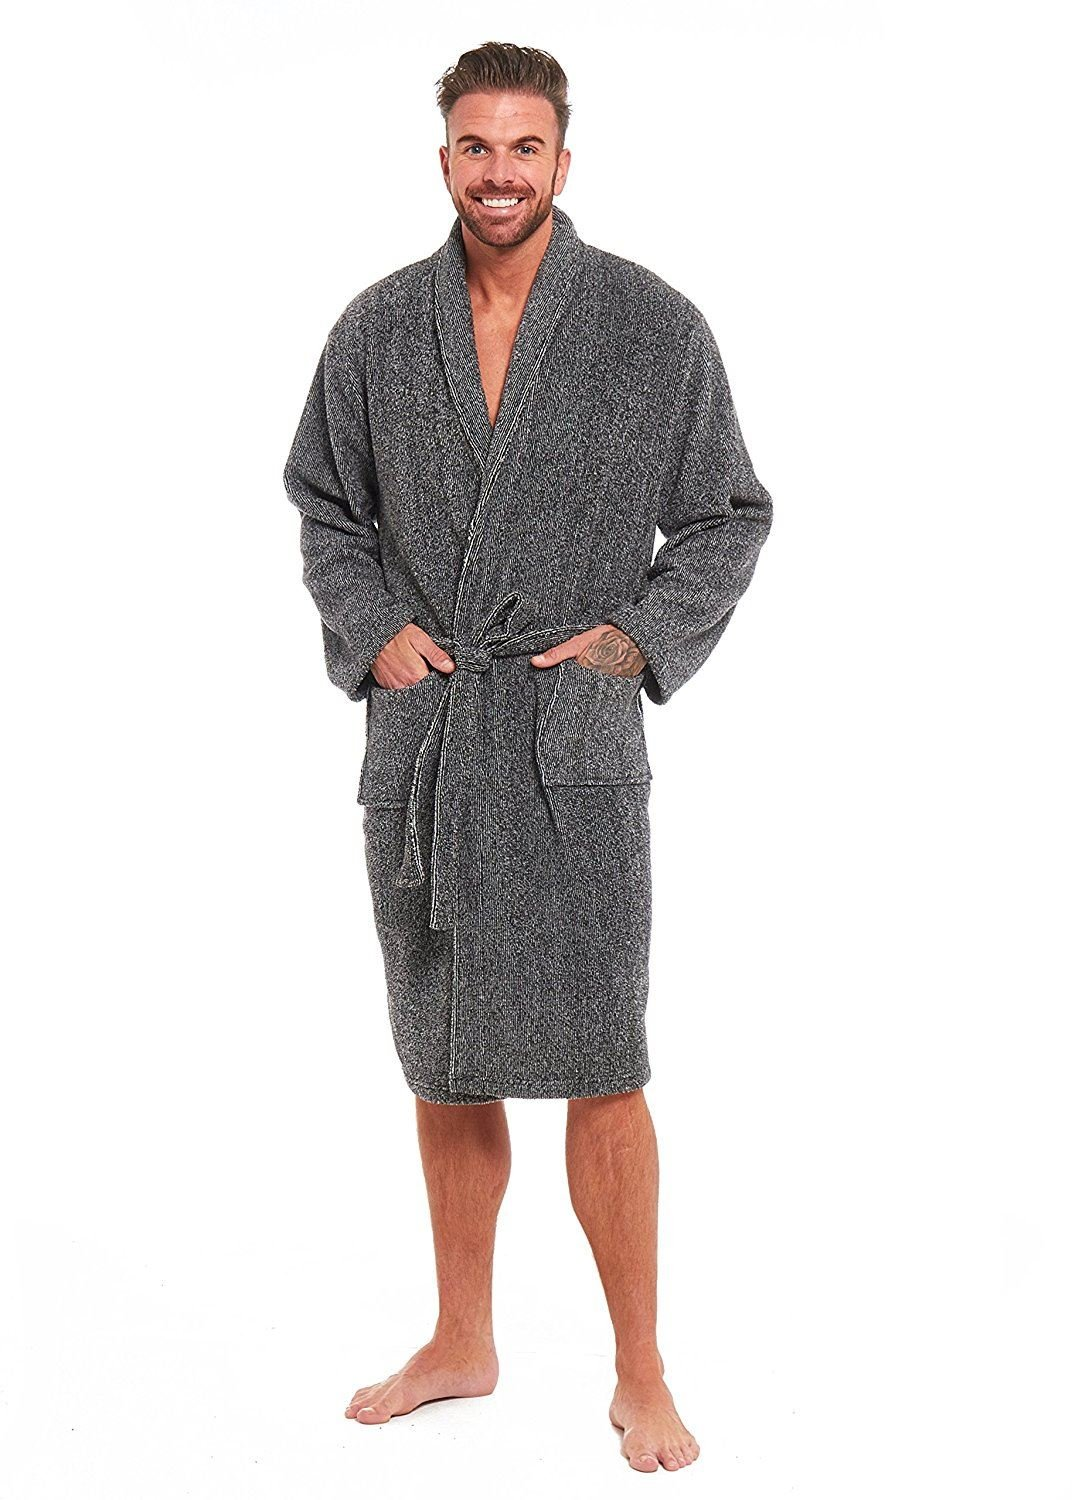 Mens Luxury Super Soft Fleece Dressing Gown Bath Robe Hooded Thick Warm Snuggle Style It Up